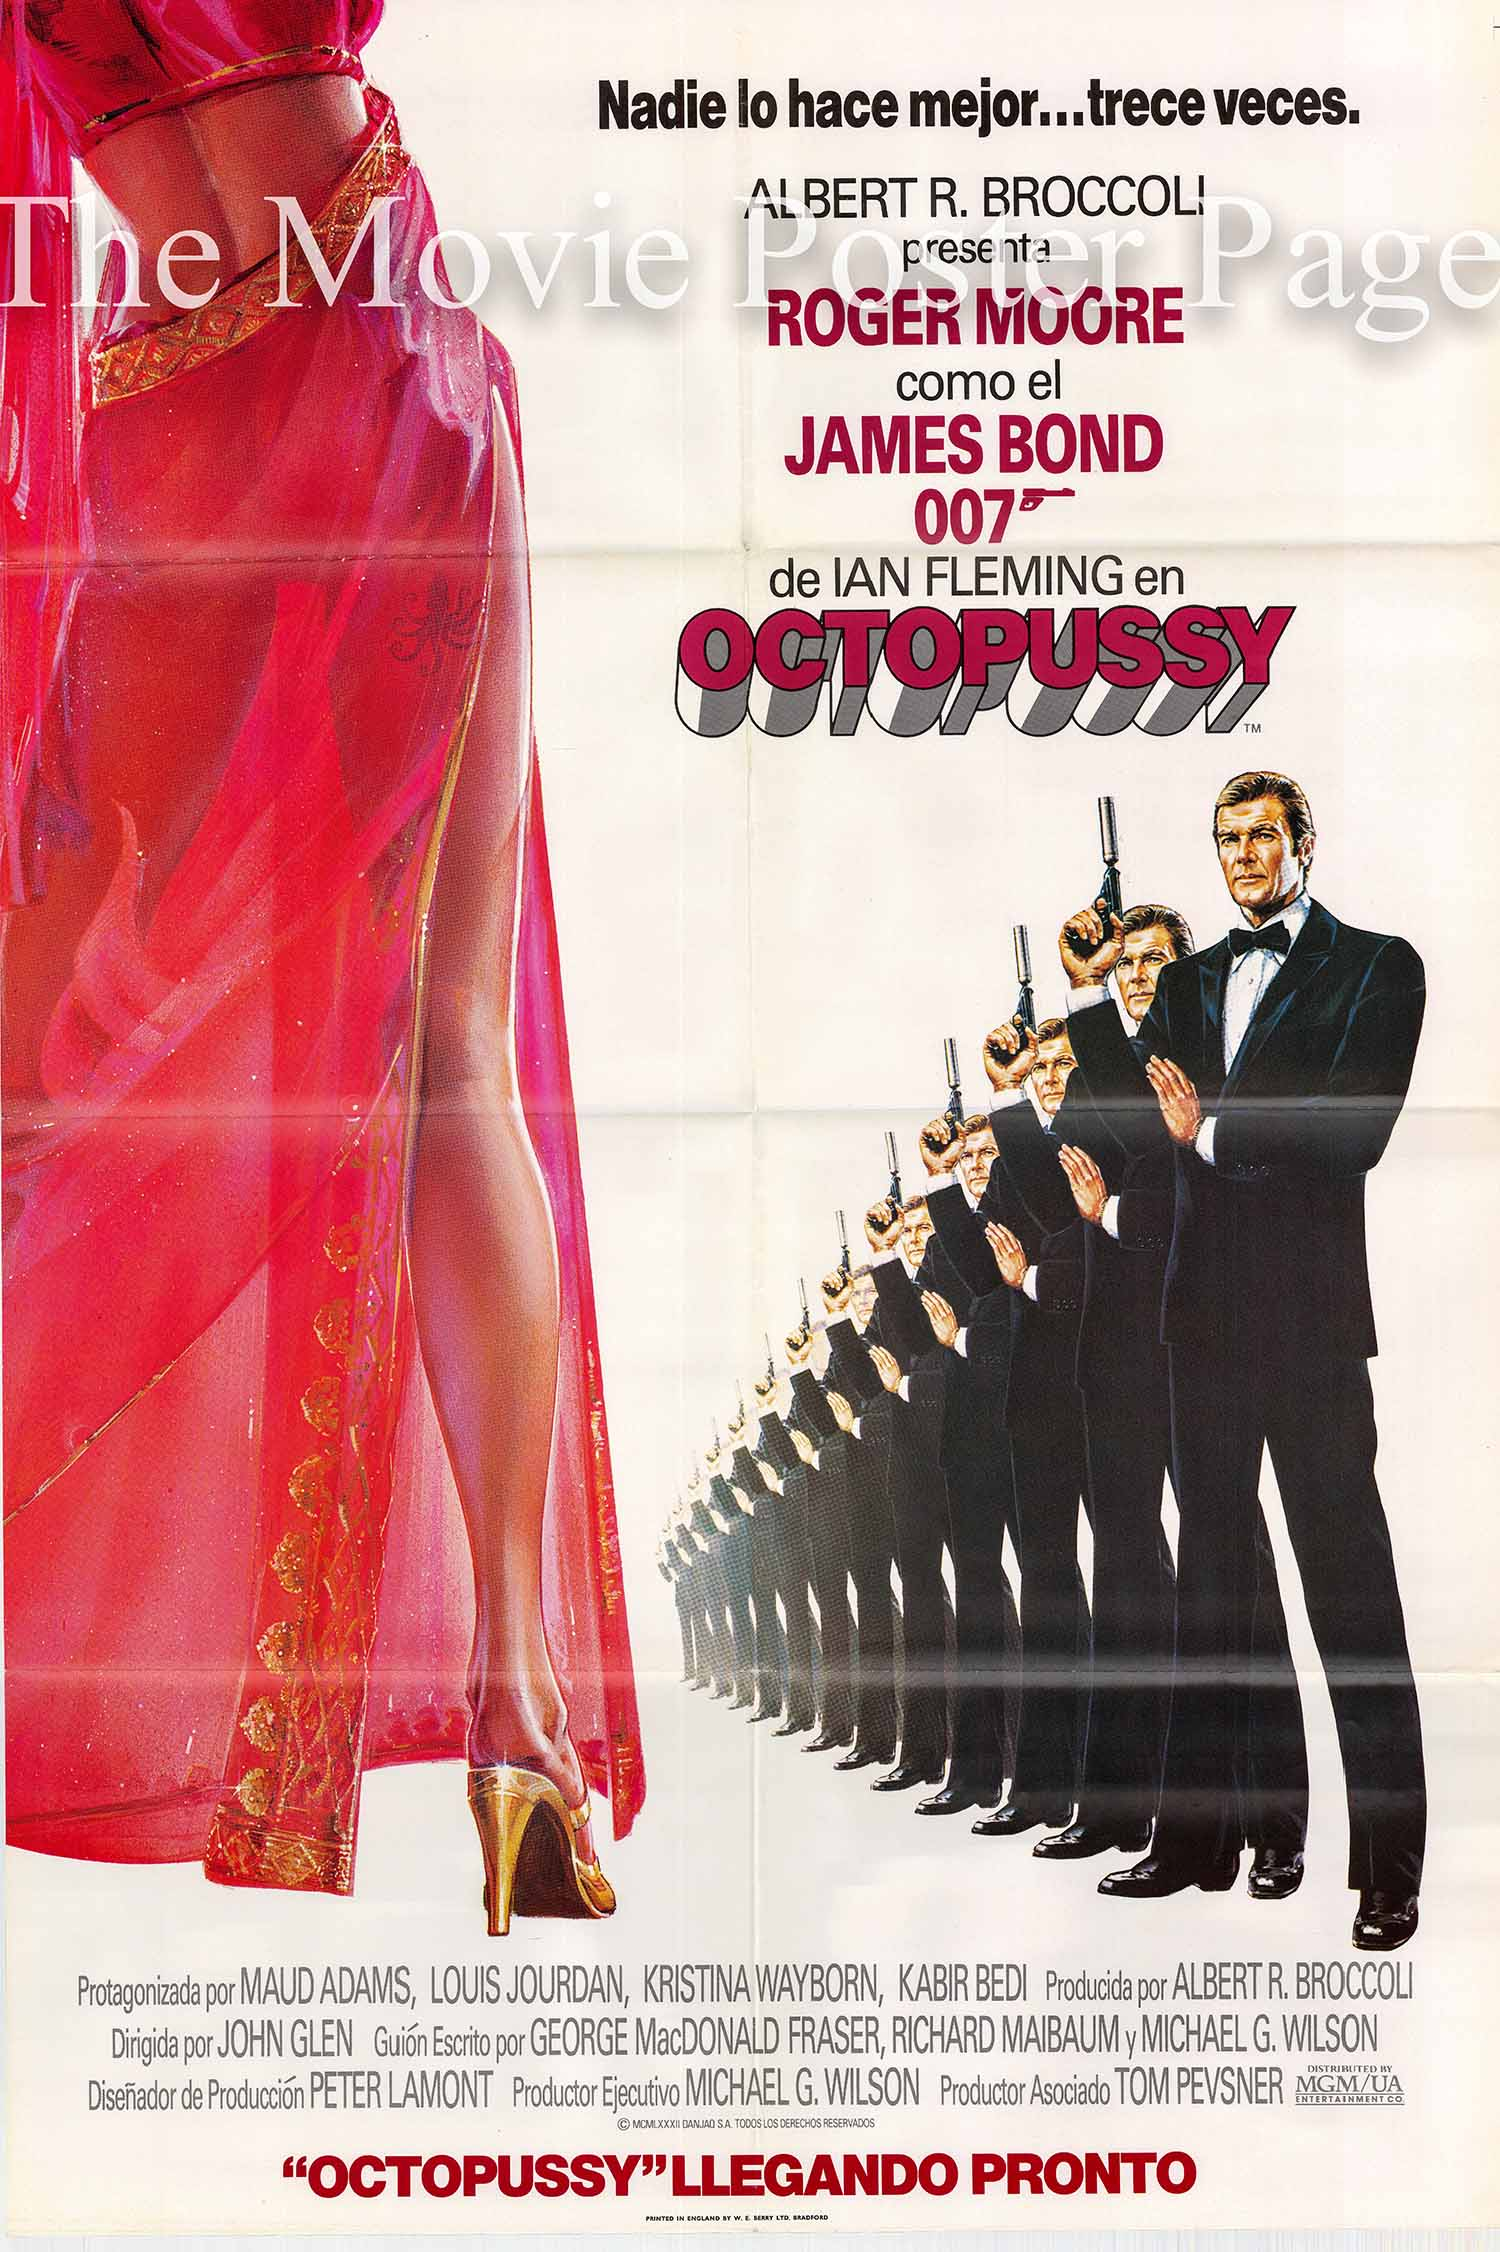 Pictured is a Spanish advance poster made to promote the 1983 John Glen film Octopussy starring Roger Moore as James Bond.